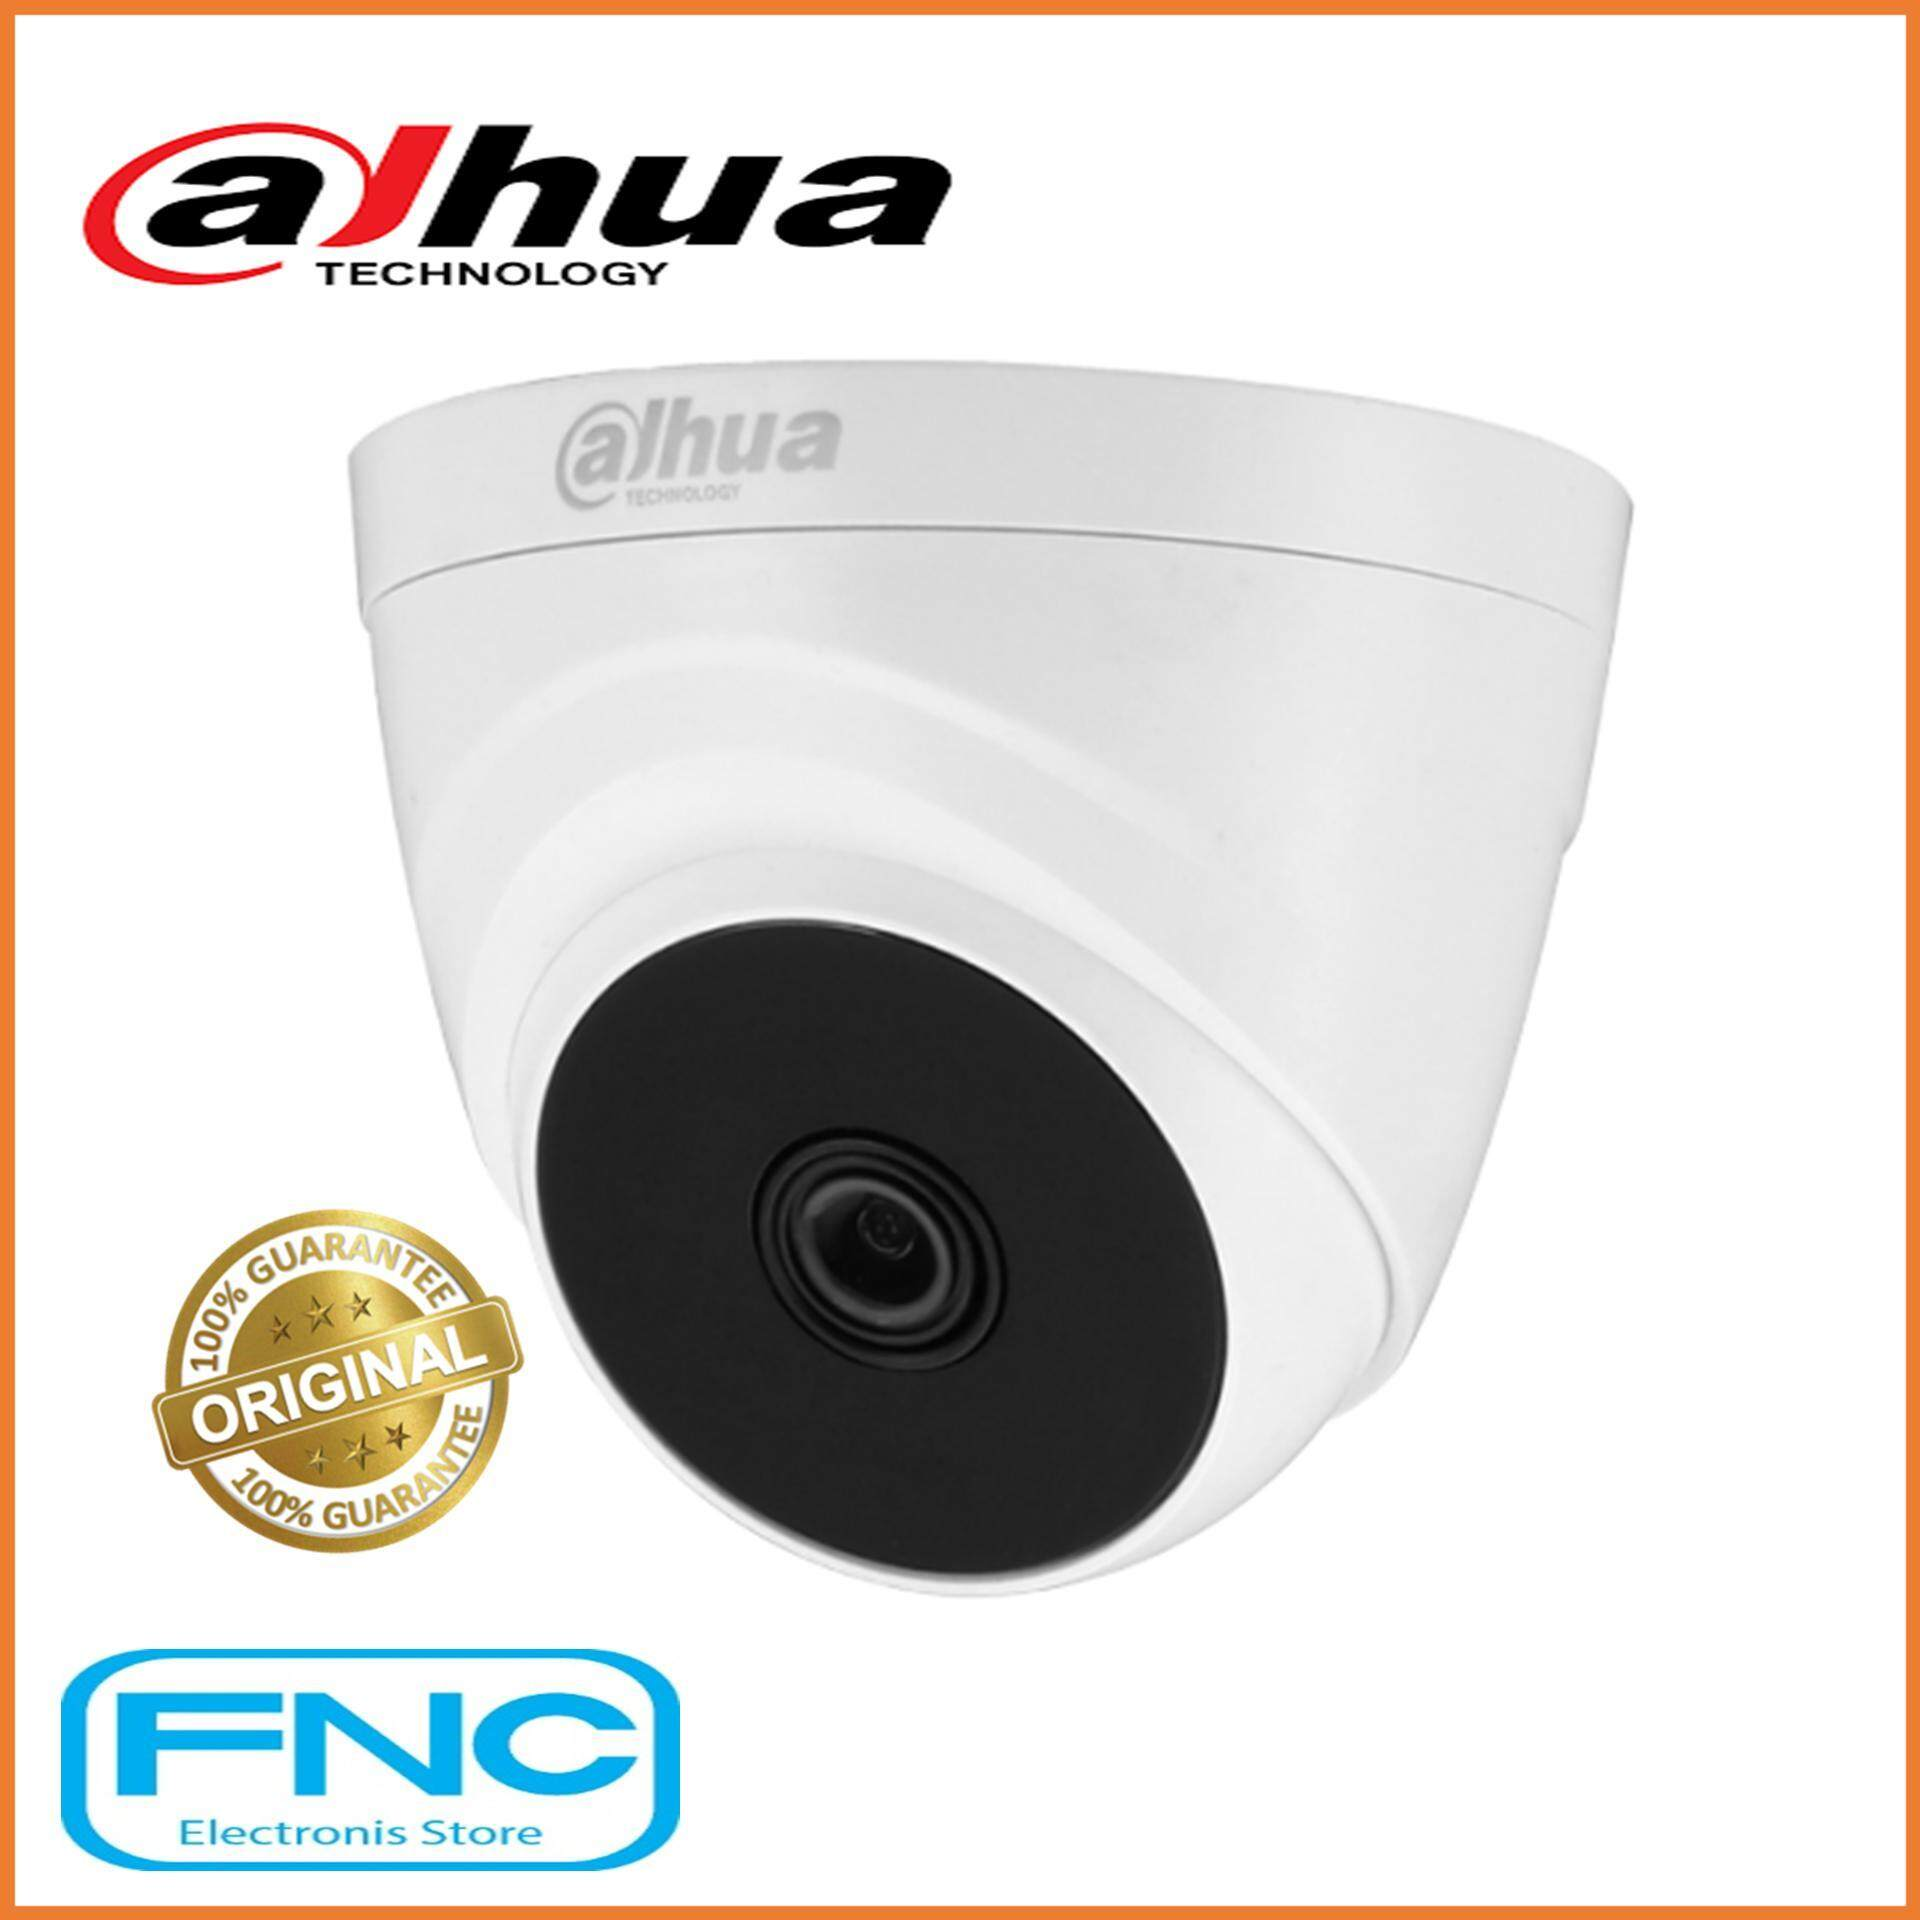 Dahua Hac-T1a21 Analog 2mp 1080p Hdcvi Ir Eyeball Full Hd Dome Camera By Fnc Electronics Store.